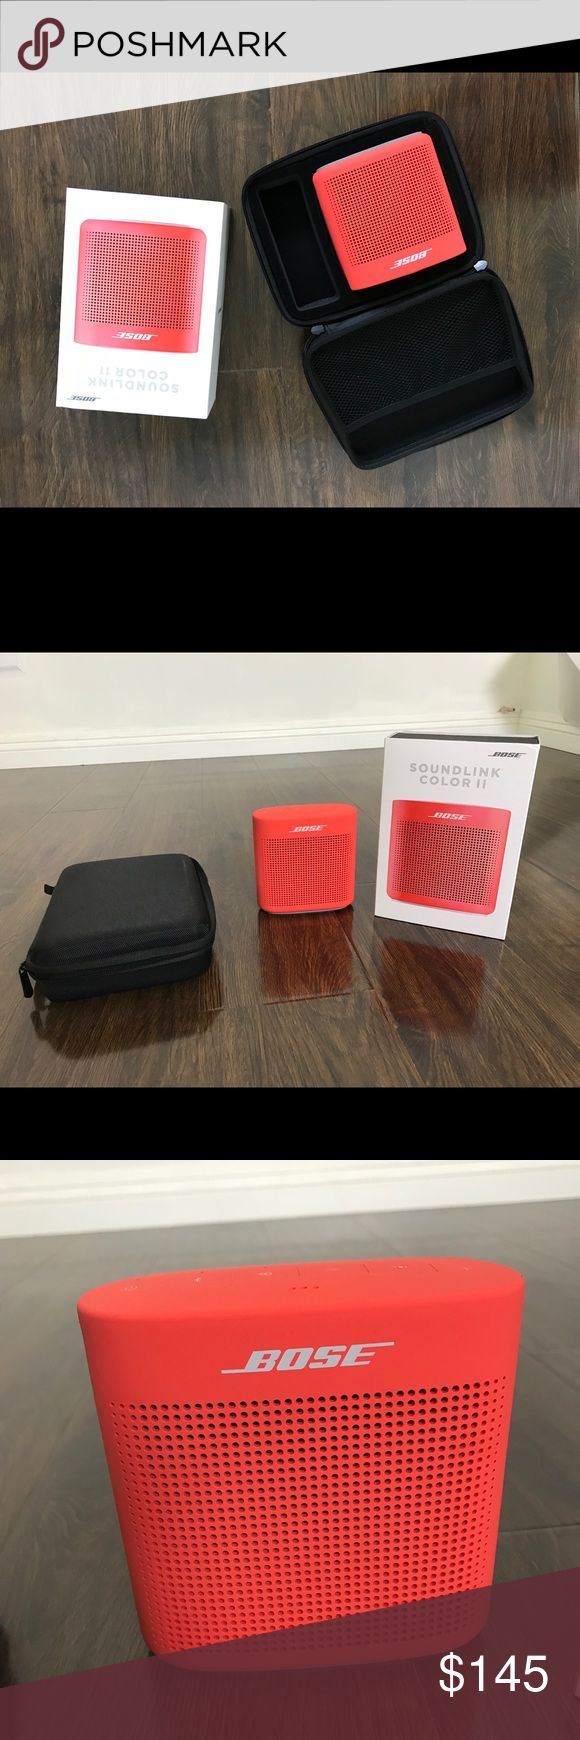 Bose SoundLink Color 2 Portable Speaker System Bose SoundLink Color 2 Coral Red Portable Speaker System. New used once. It comes with box and carrying case bose Other